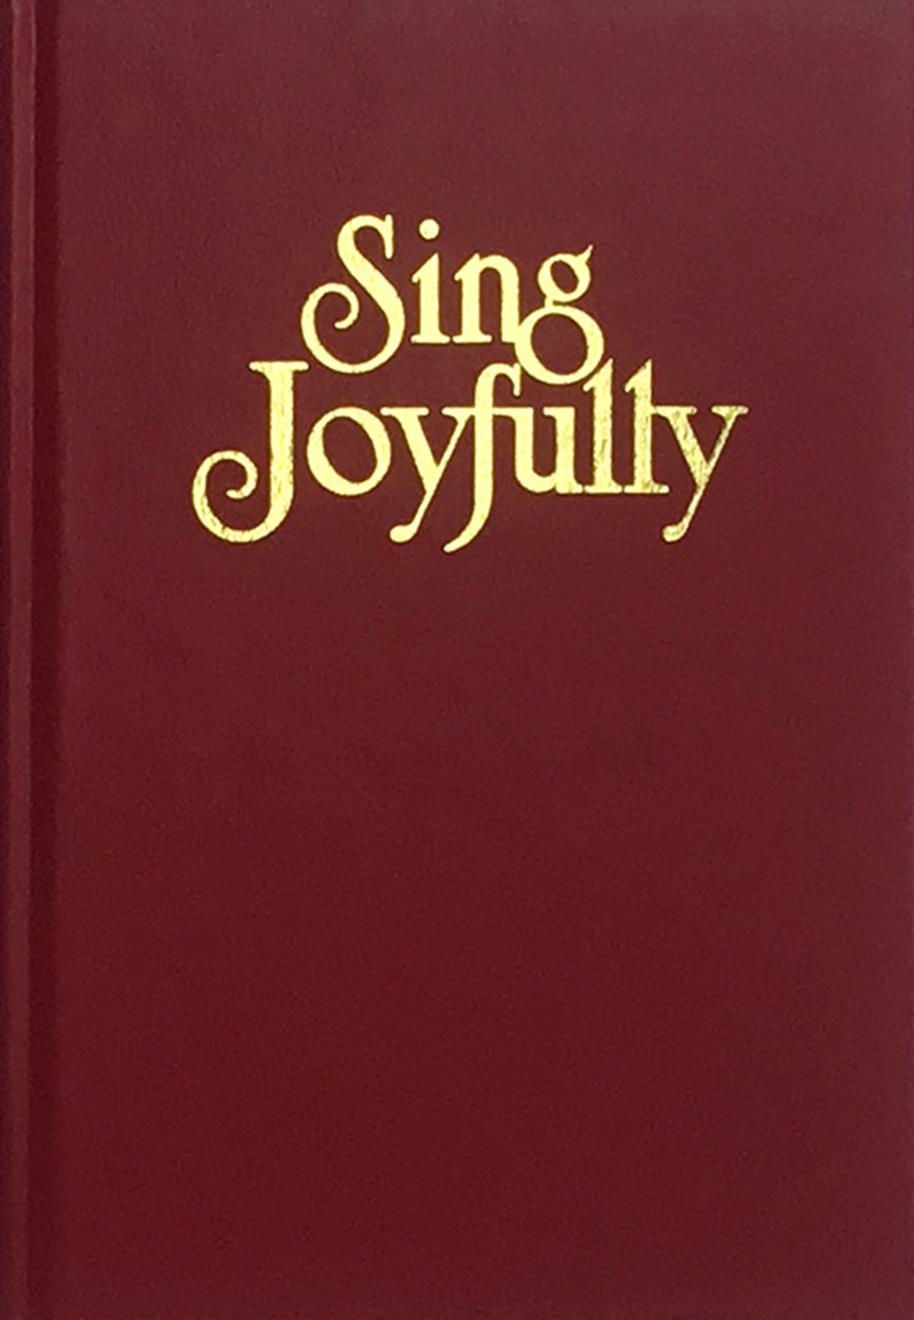 Sing Joyfully - Red Cover Image